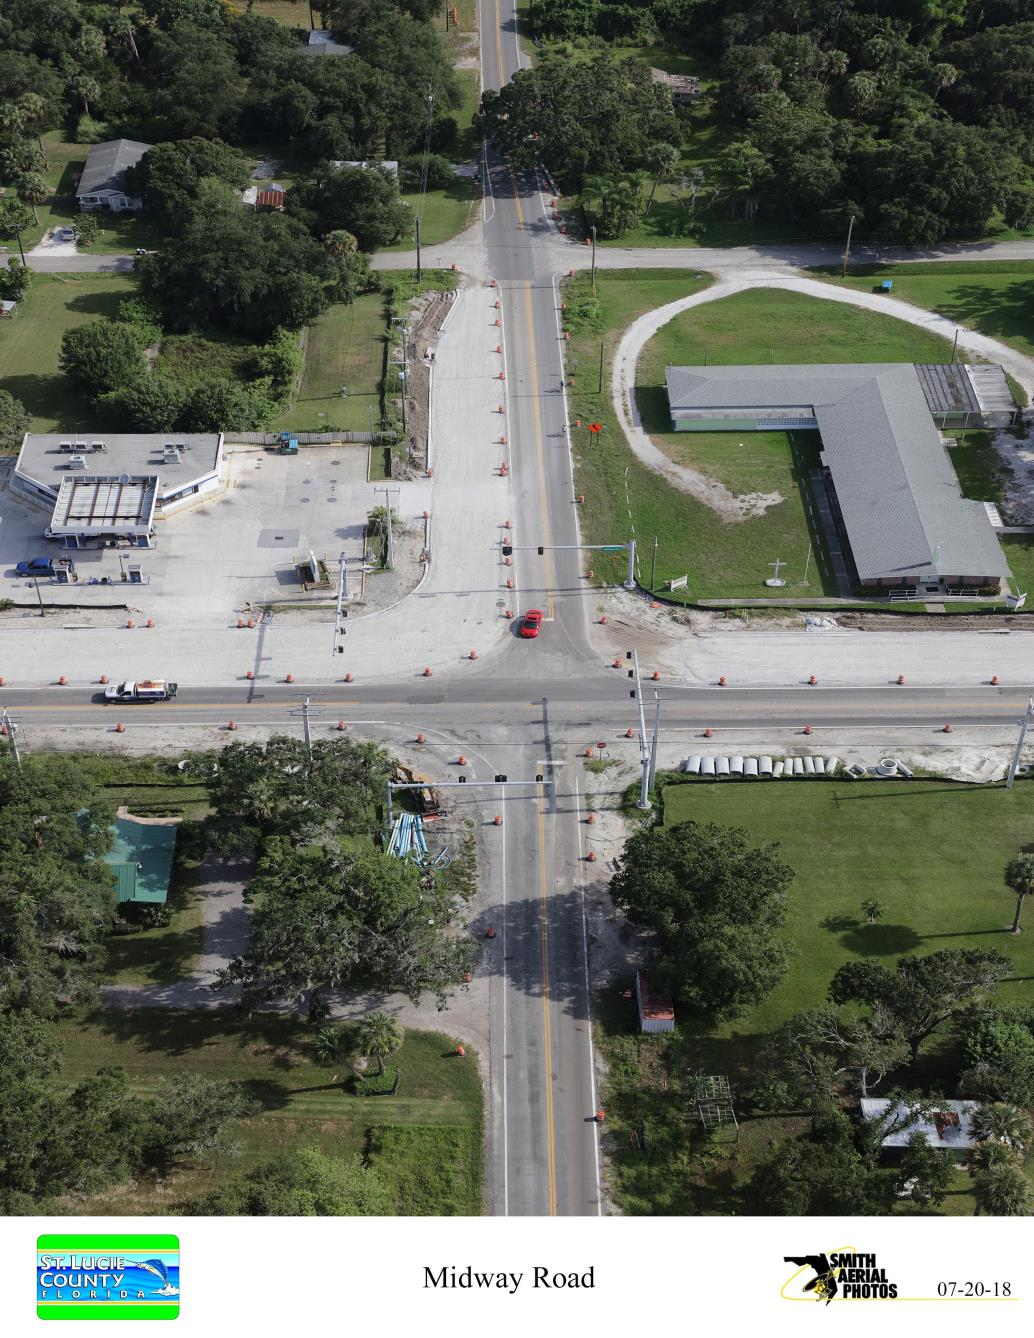 Intersection of Sunrise Blvd and Midway Rd from South